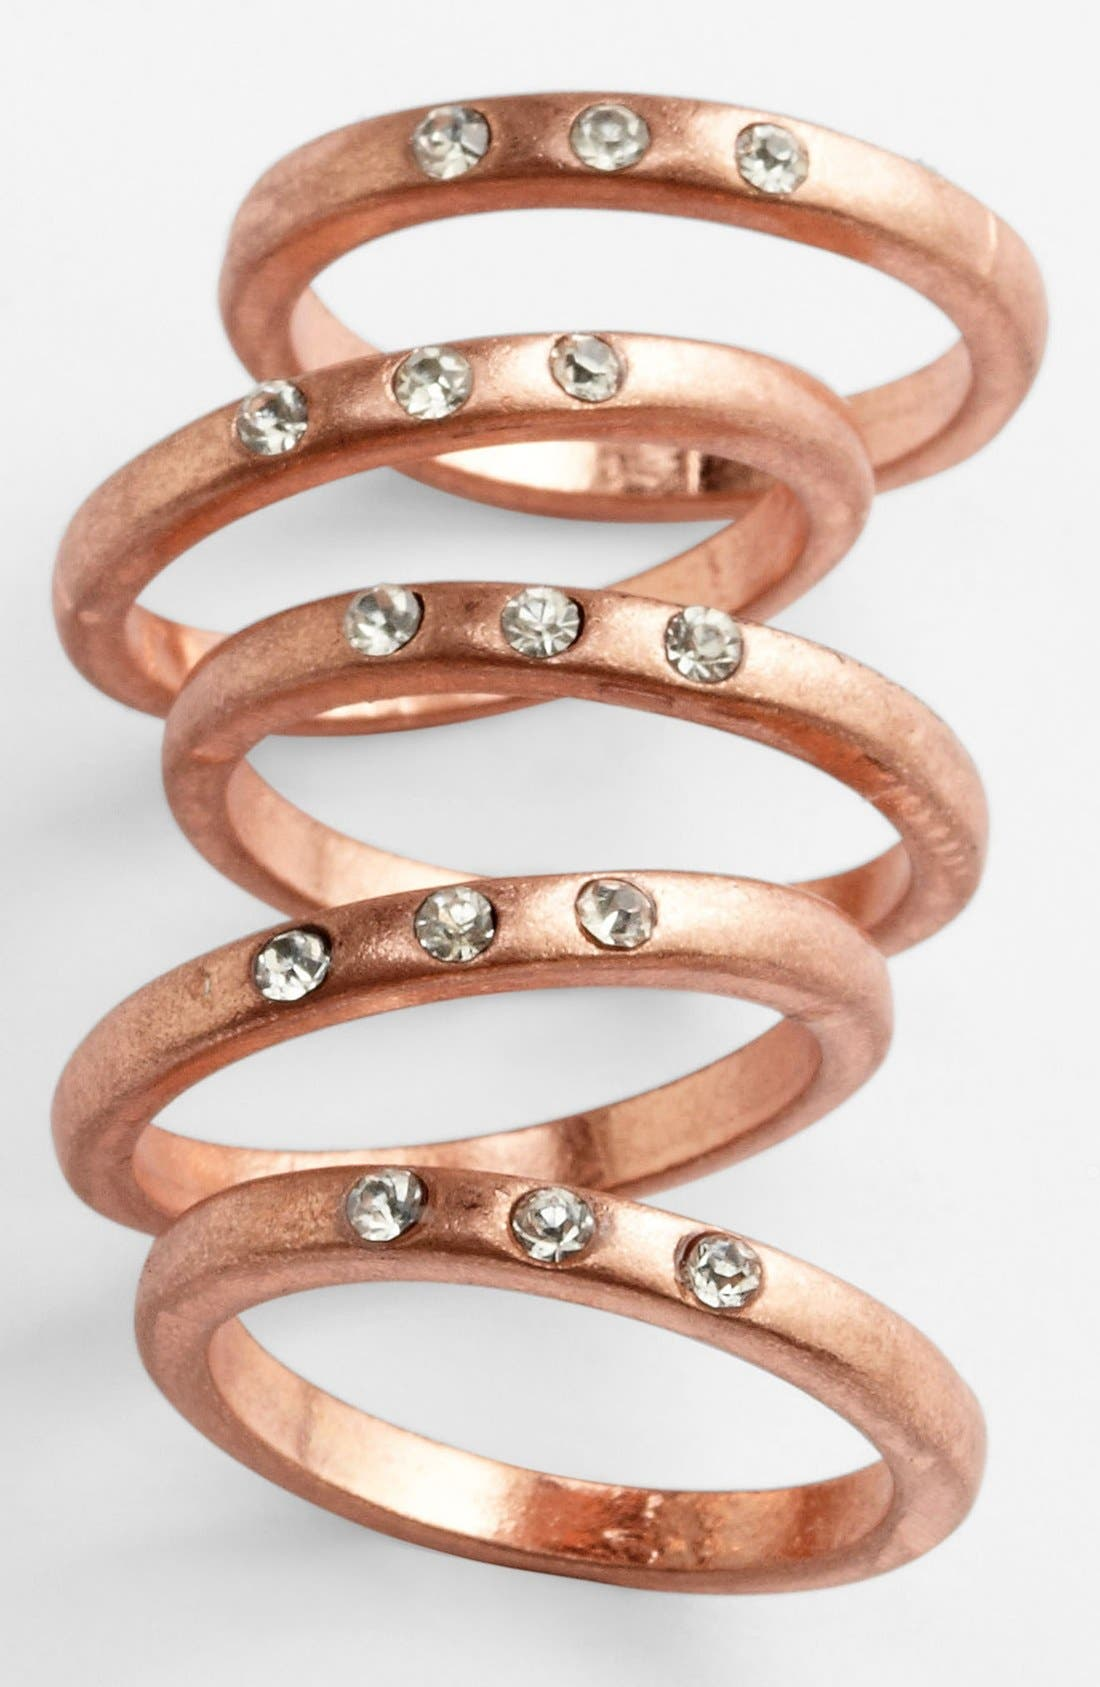 Alternate Image 1 Selected - Carole Stone Crystal Stackable Rings (Set of 5)